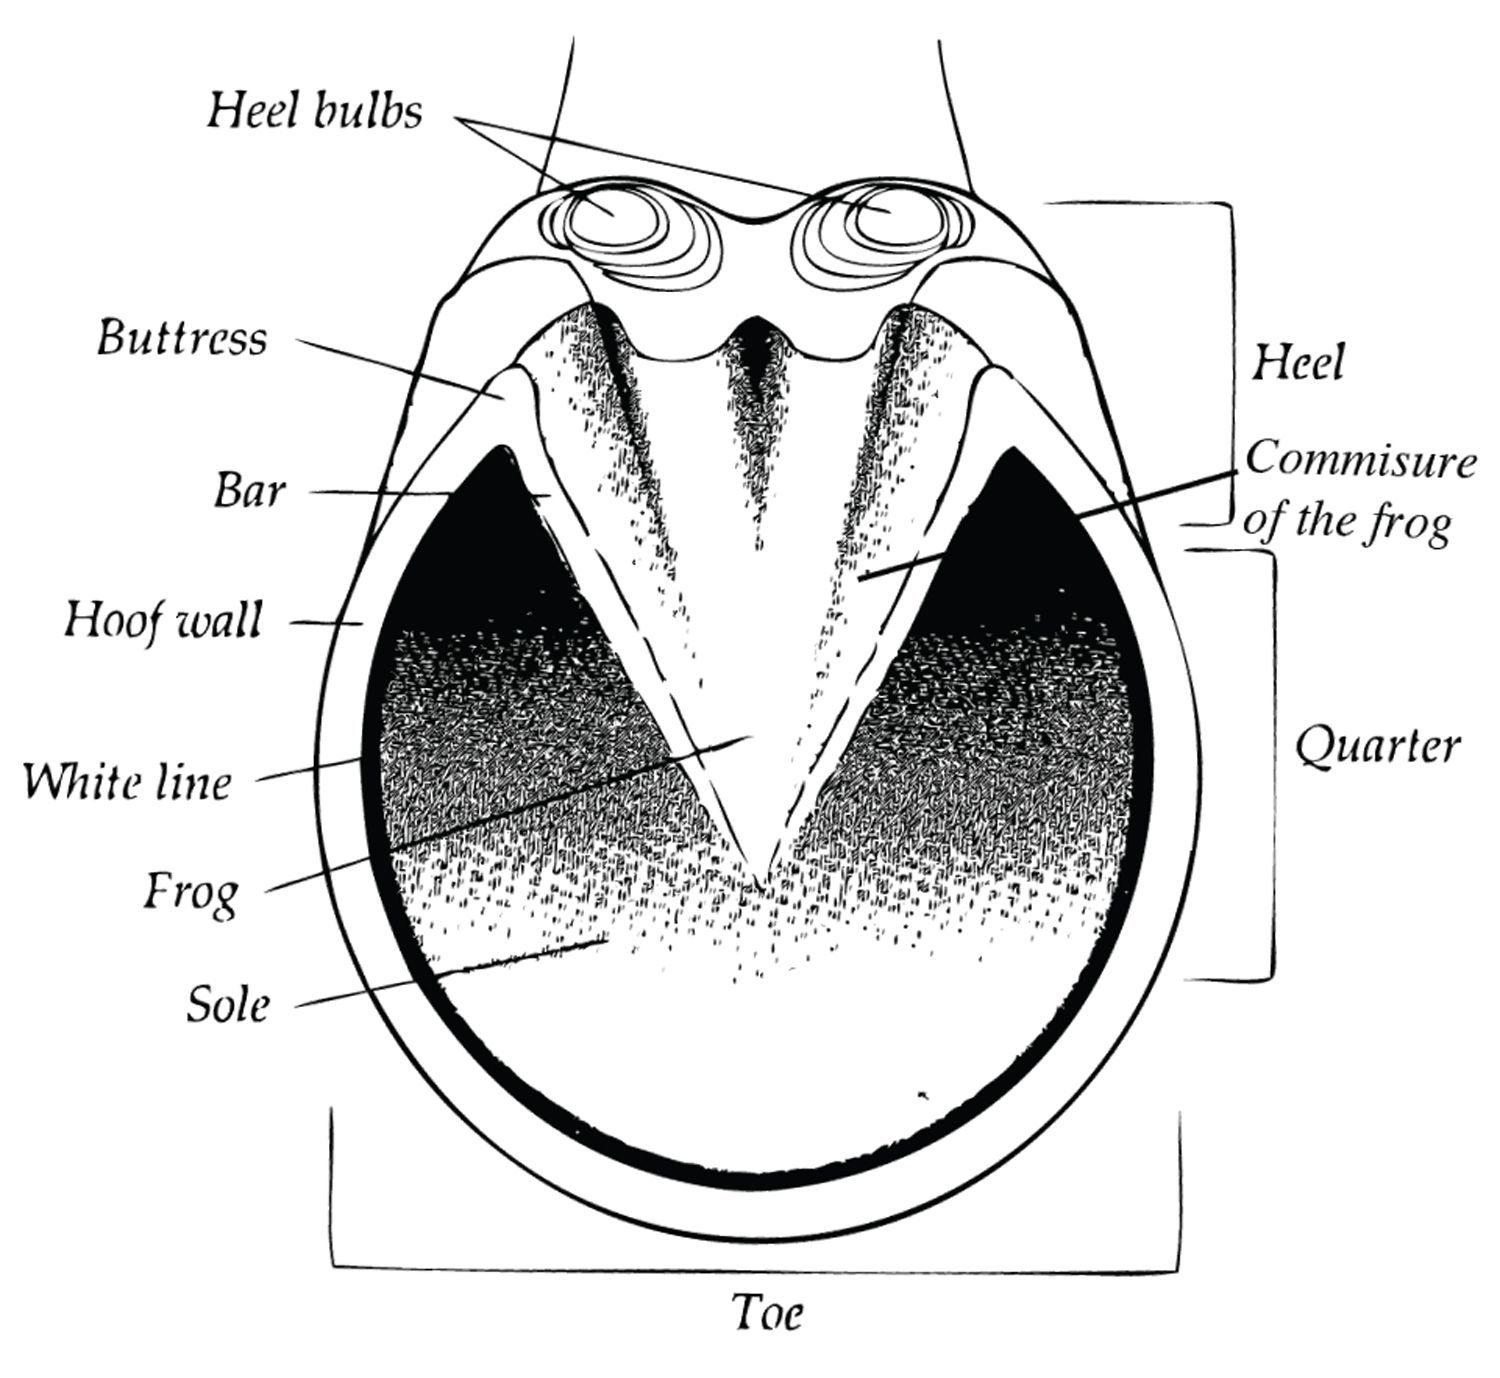 diagram of the parts of the equine hoof showing heel bulbs diagram of horse hoof heel bulb [ 1500 x 1378 Pixel ]